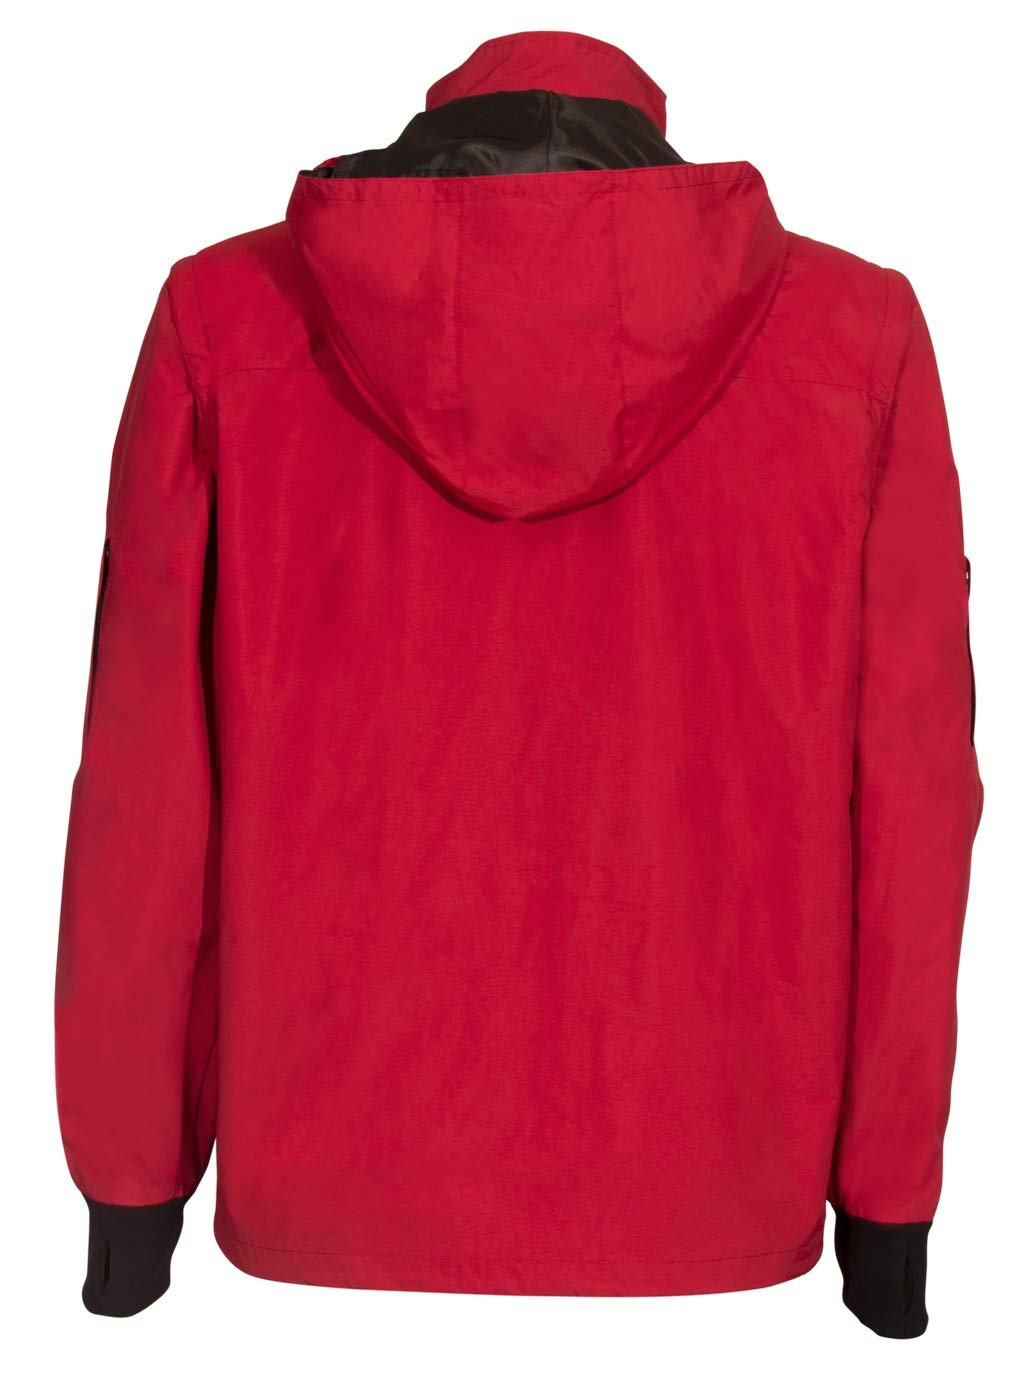 Red Womens Soft Shell Travel Jacket | Global Travel Clothing